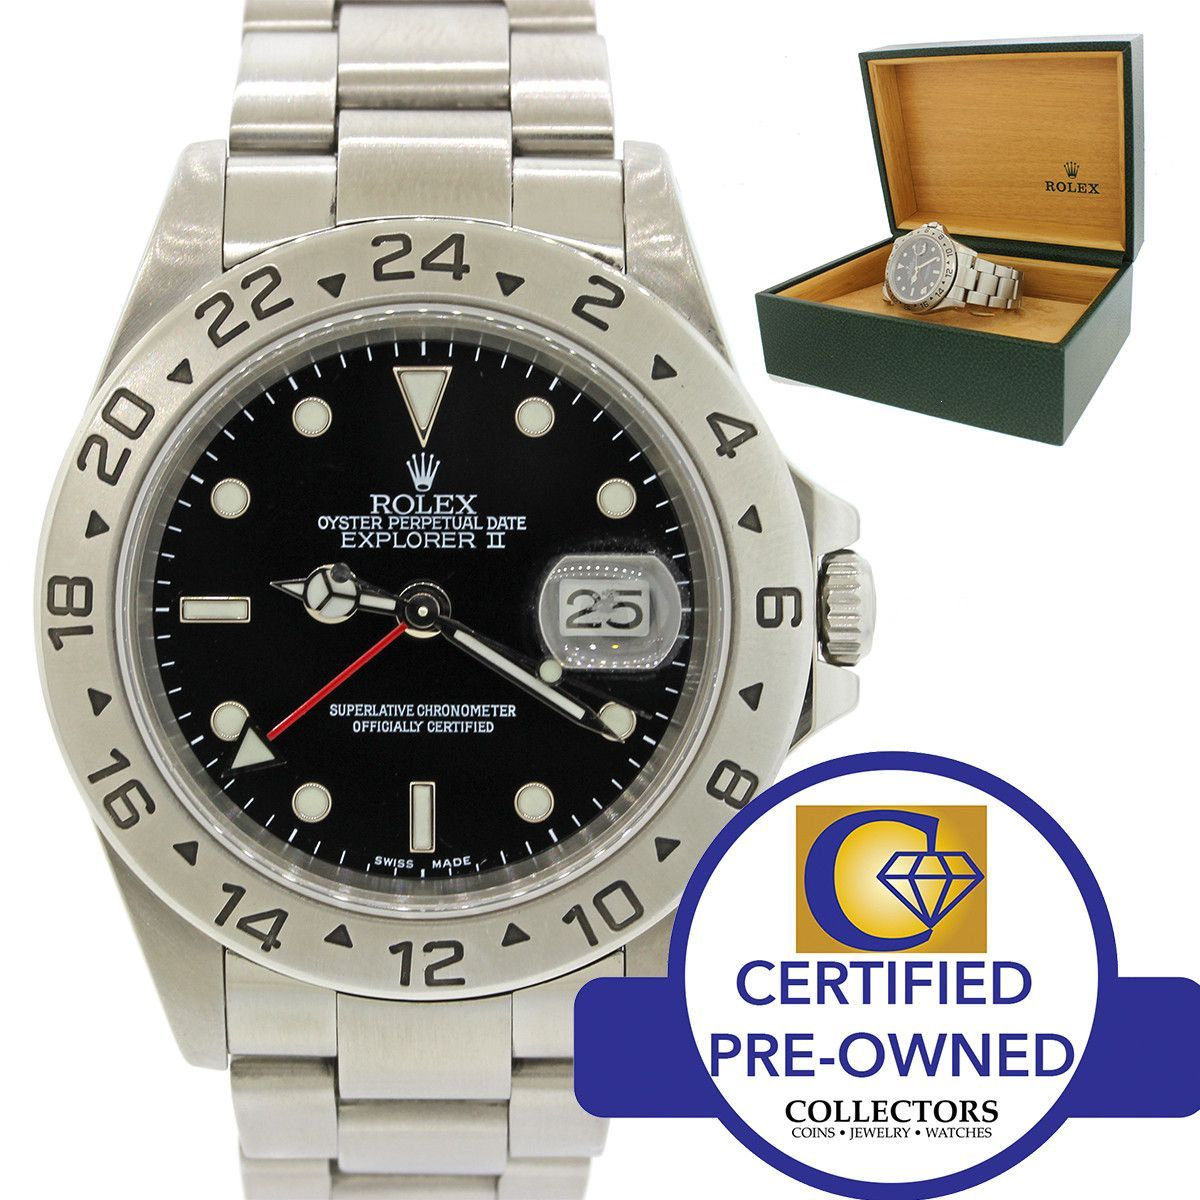 Rolex Explorer II 16570 Stainless Steel Black GMT Dial 40mm Sport Watch w/ Box